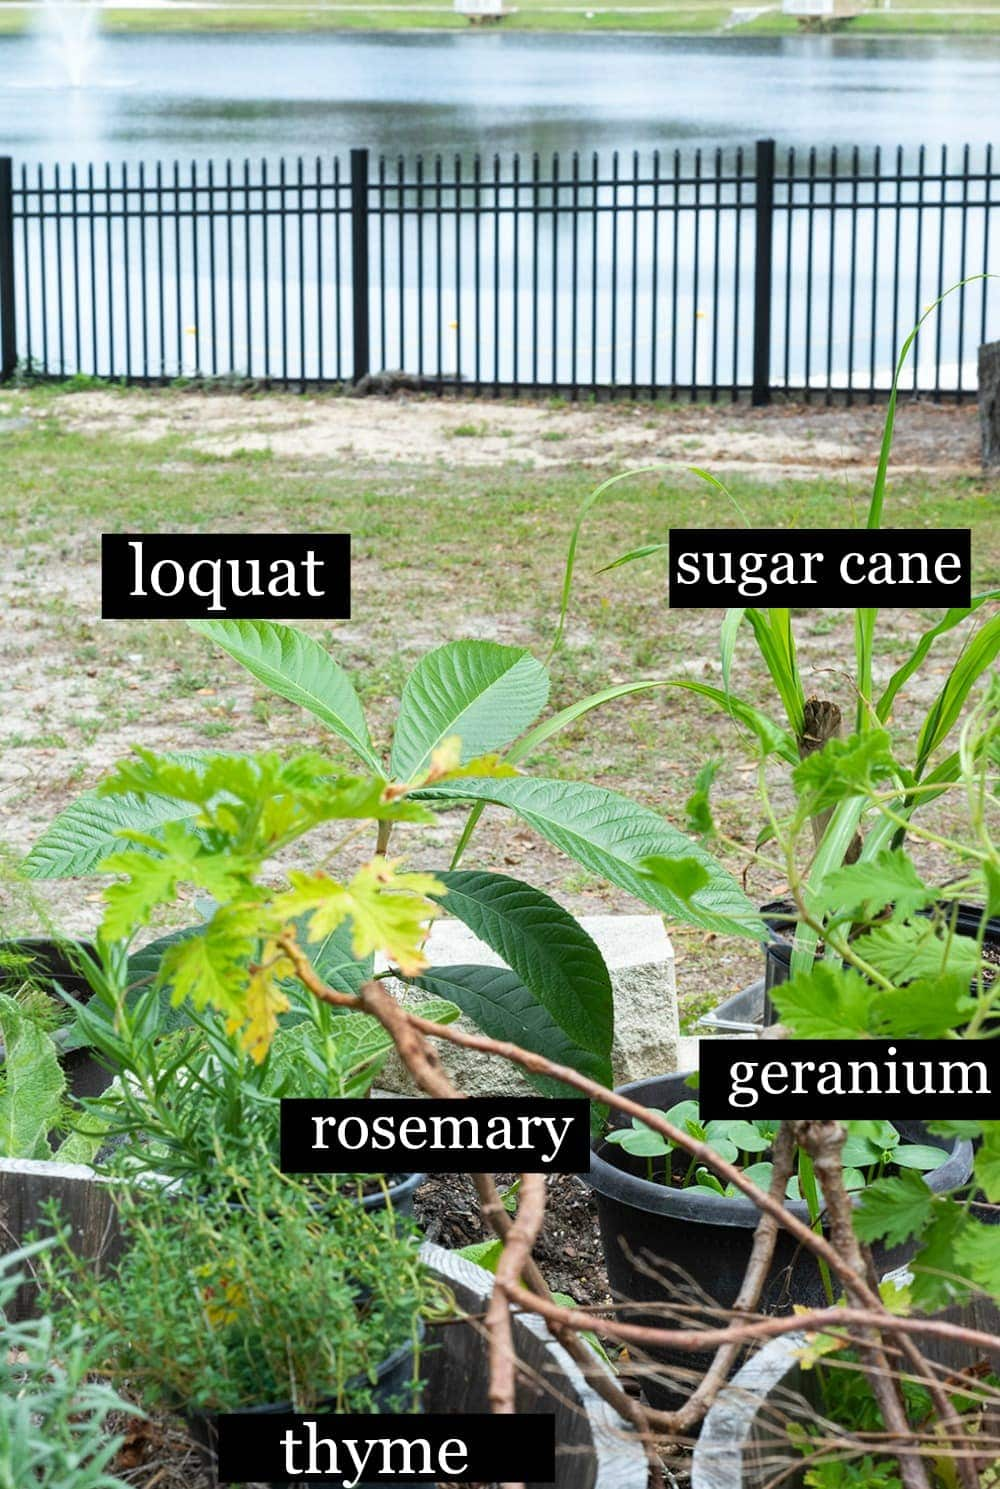 Loquat plant in garden next to sugar cane, rosemary, geranium and rosemary